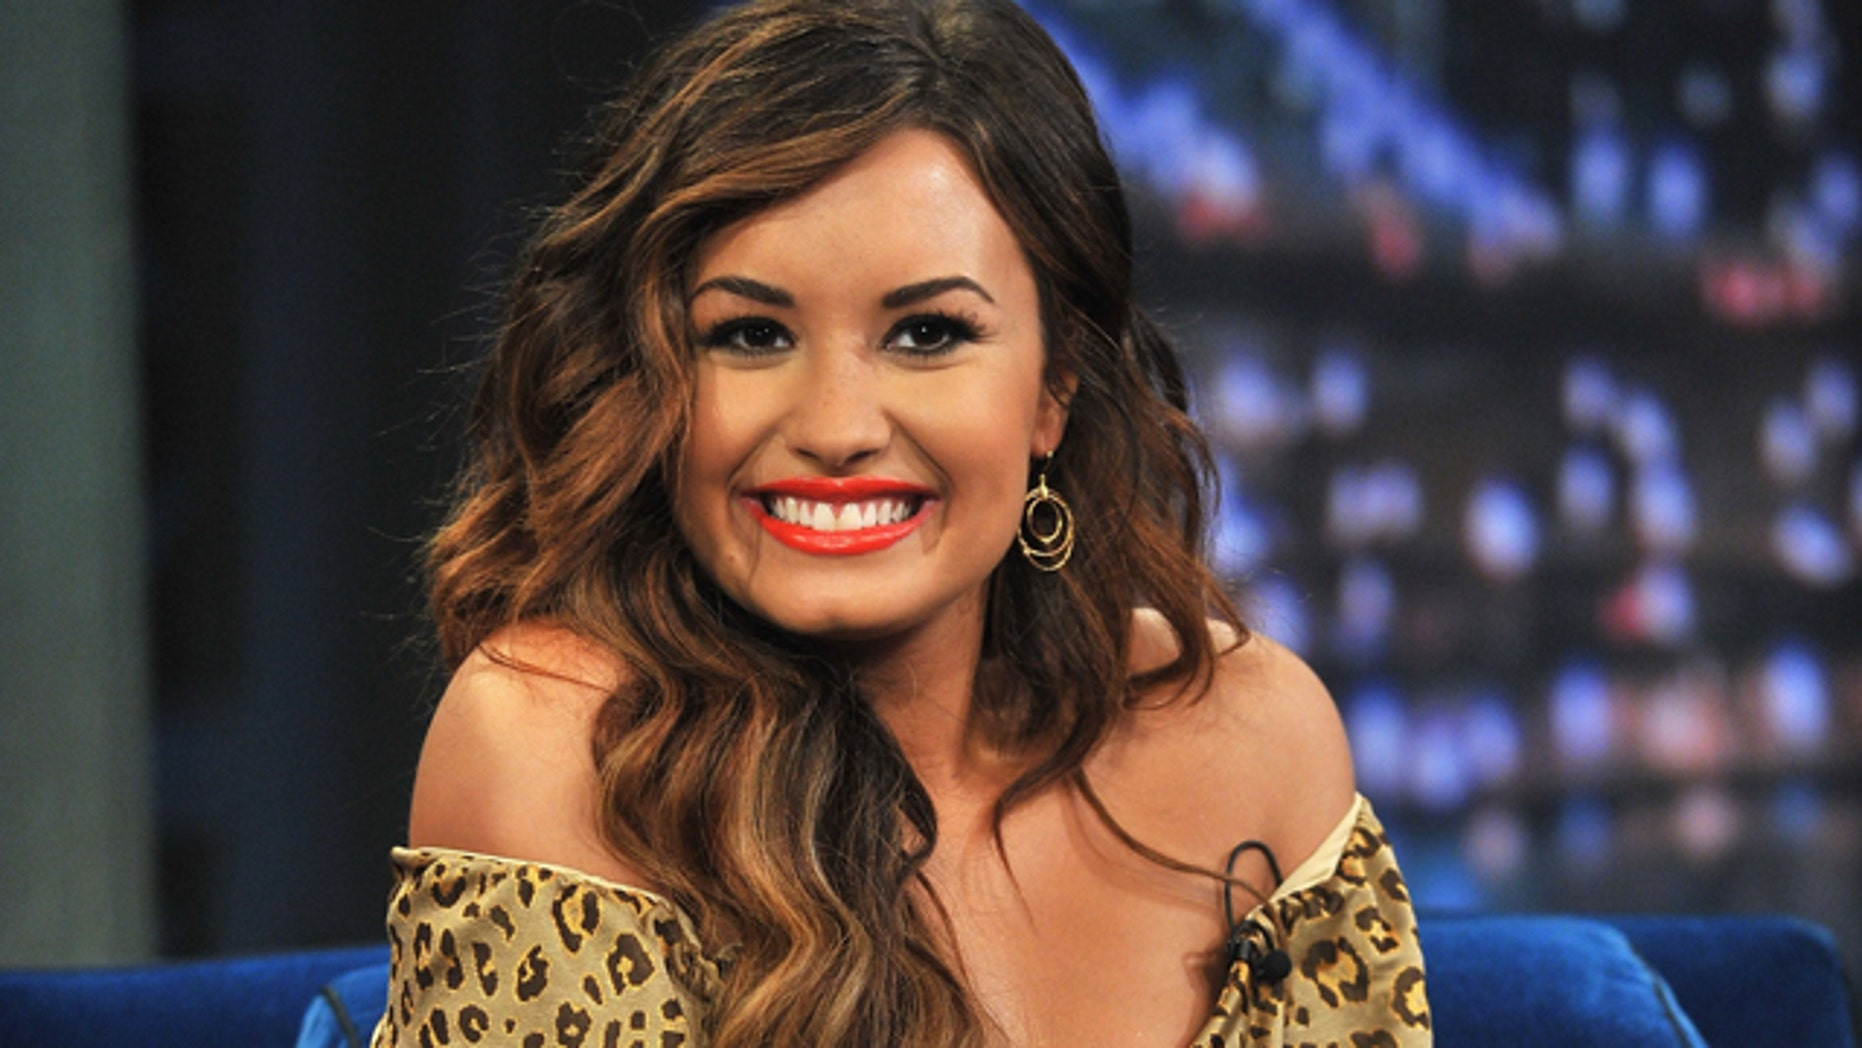 Sept. 20, 2011: Demi Lovato visits 'Late Night With Jimmy Fallon' at Rockefeller Center in New York City.